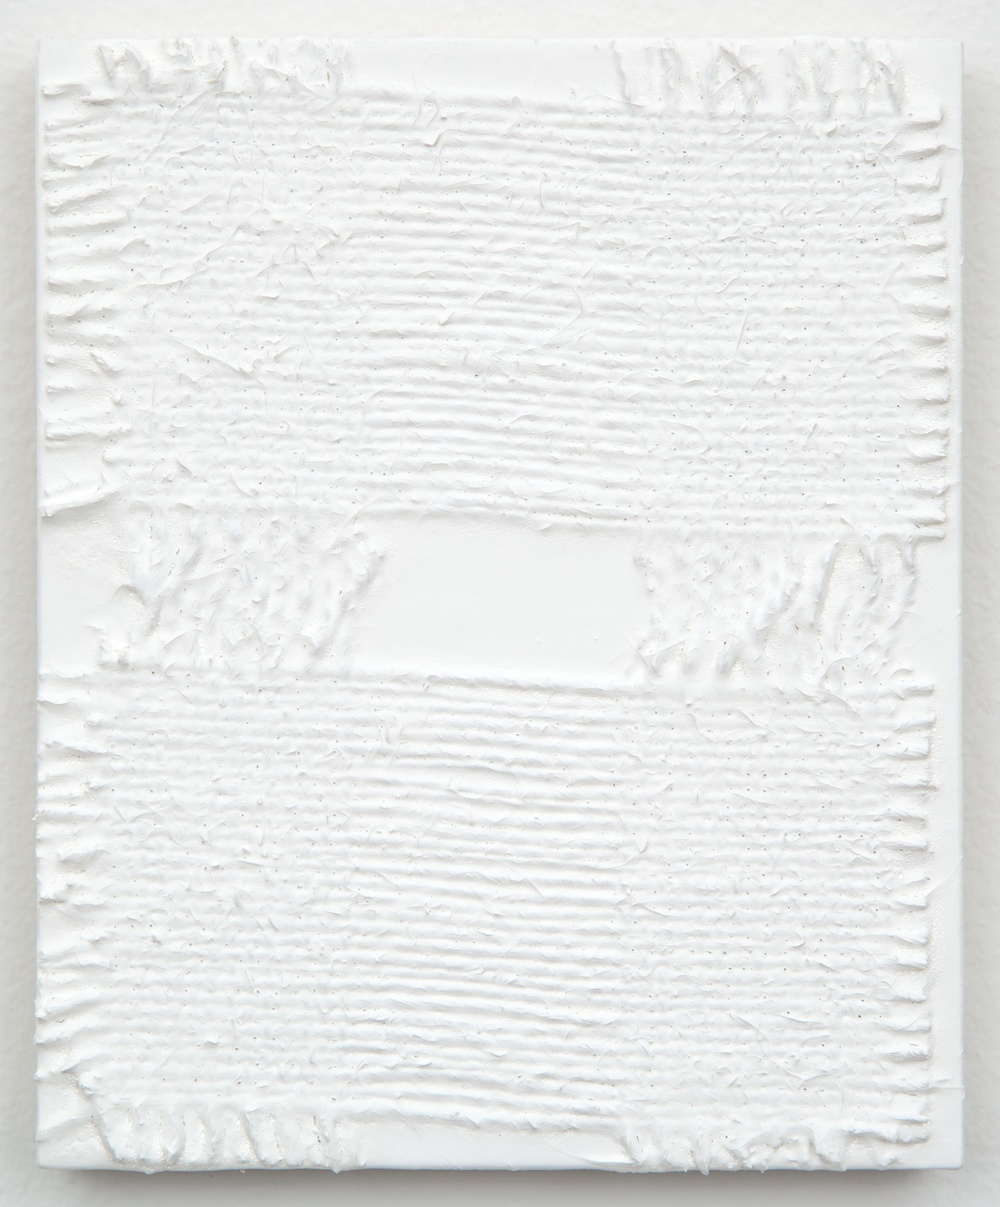 Michelle Grabner  Untitled  2013 Burlap and gesso on panel 6h x 5w in MGrab365